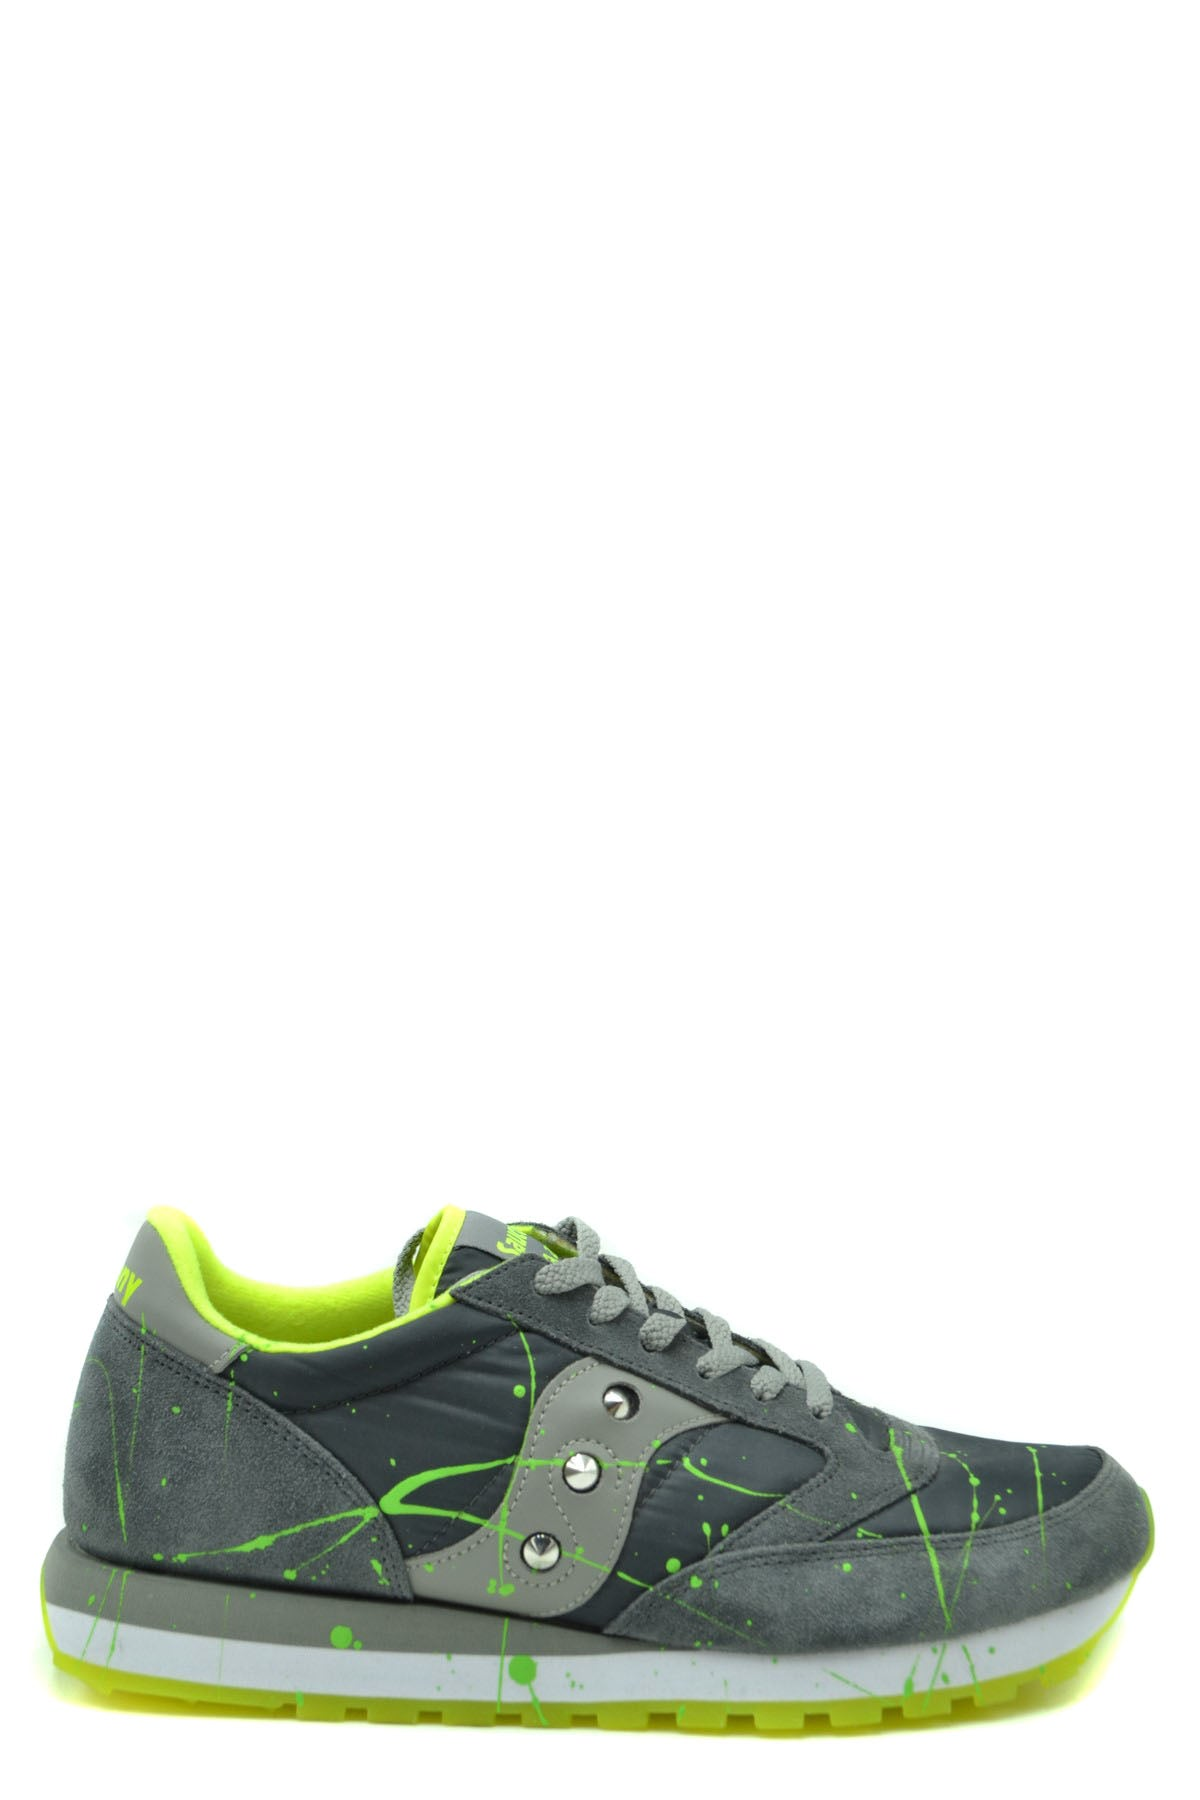 Shoes Saucony-Sports & Entertainment - Sneakers-42.5-Product Details Manufacturer Part Number: Jazz OriginalYear: 2020Composition: Chamois 50%, Nylon 50%Size: EuGender: ManMade In: ChinaSeason: Fall / WinterType Of Accessory: ShoesMain Color: GrayTerms: New With Label-Keyomi-Sook